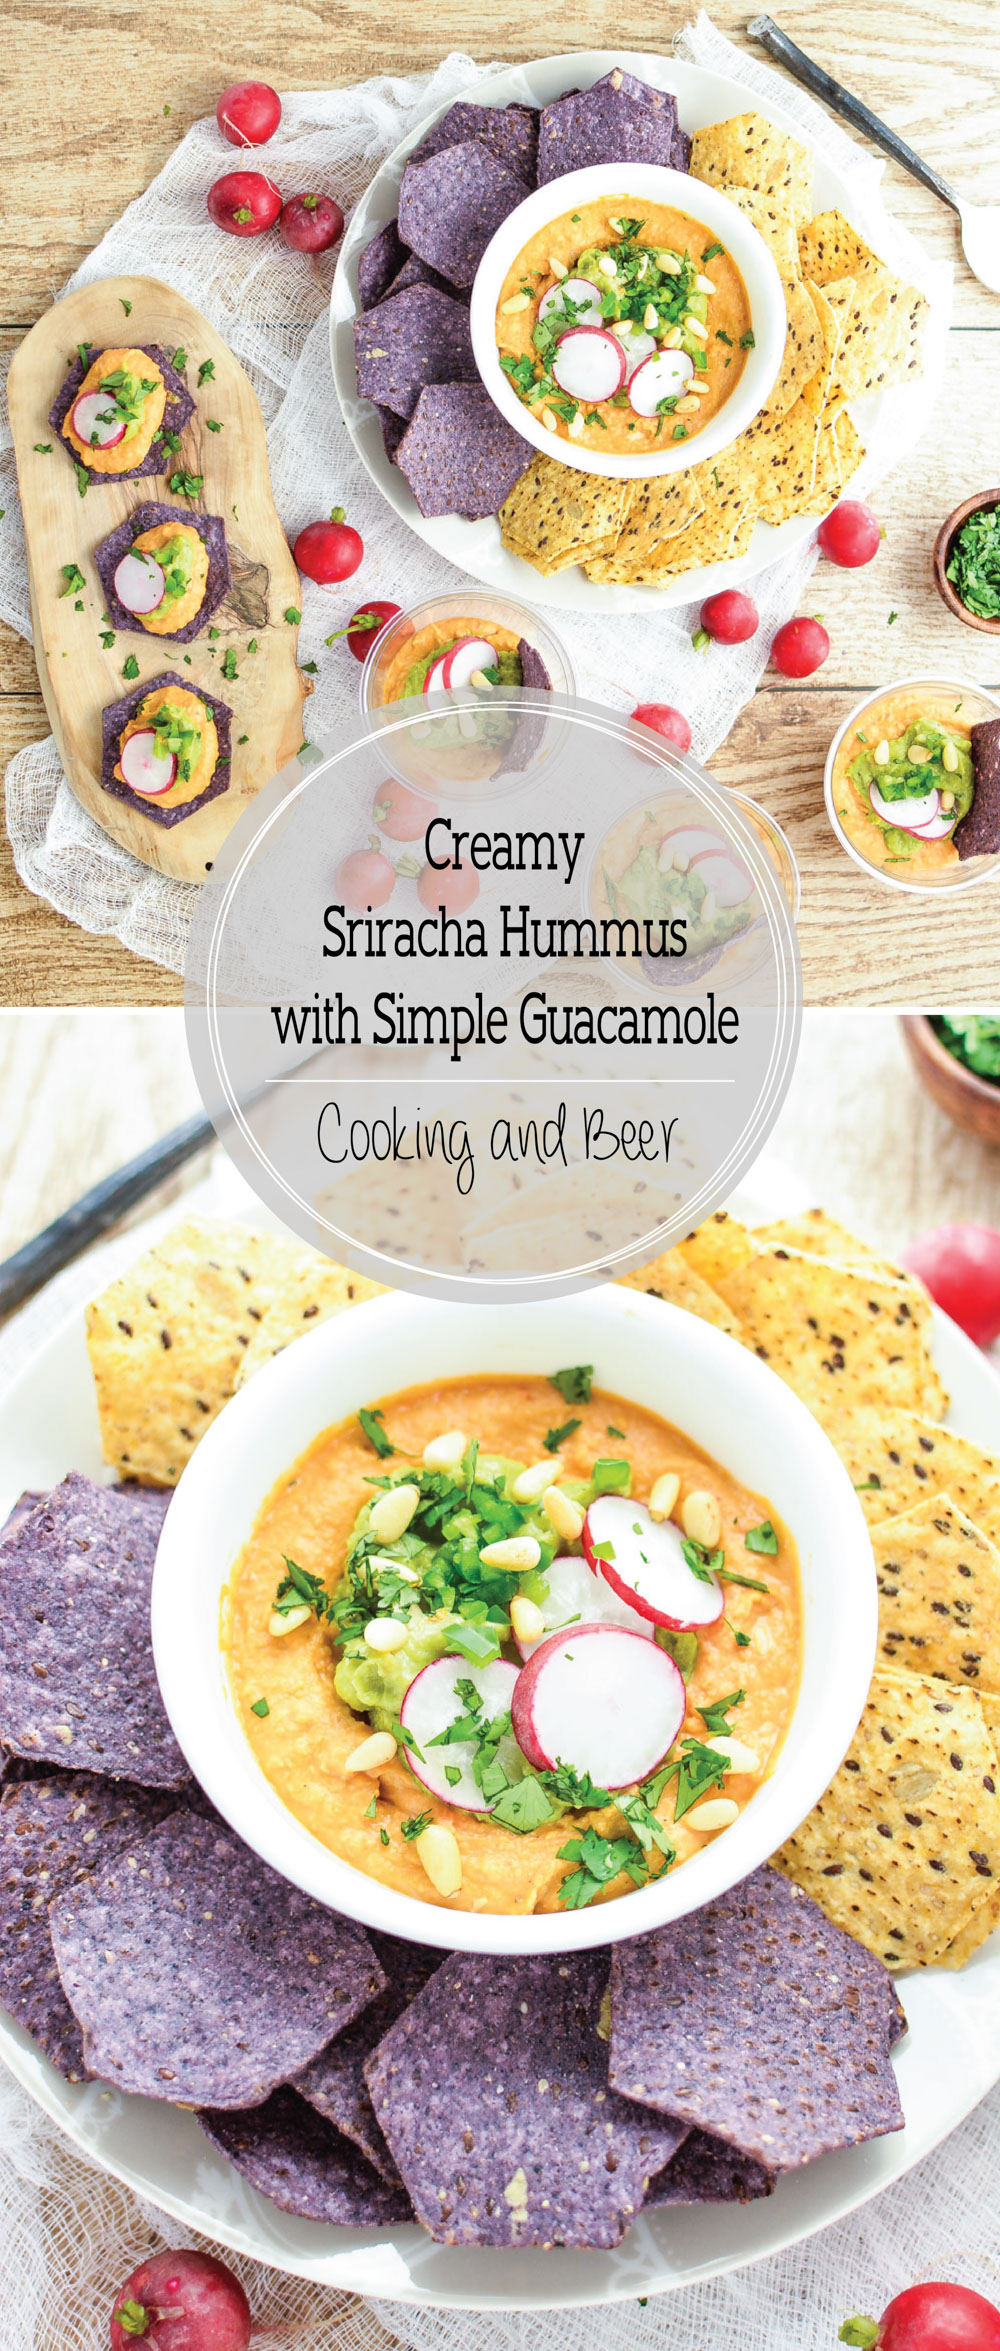 Creamy Sriracha Hummus with Simple Guacamole is the perfect dip recipe for your game day menu!